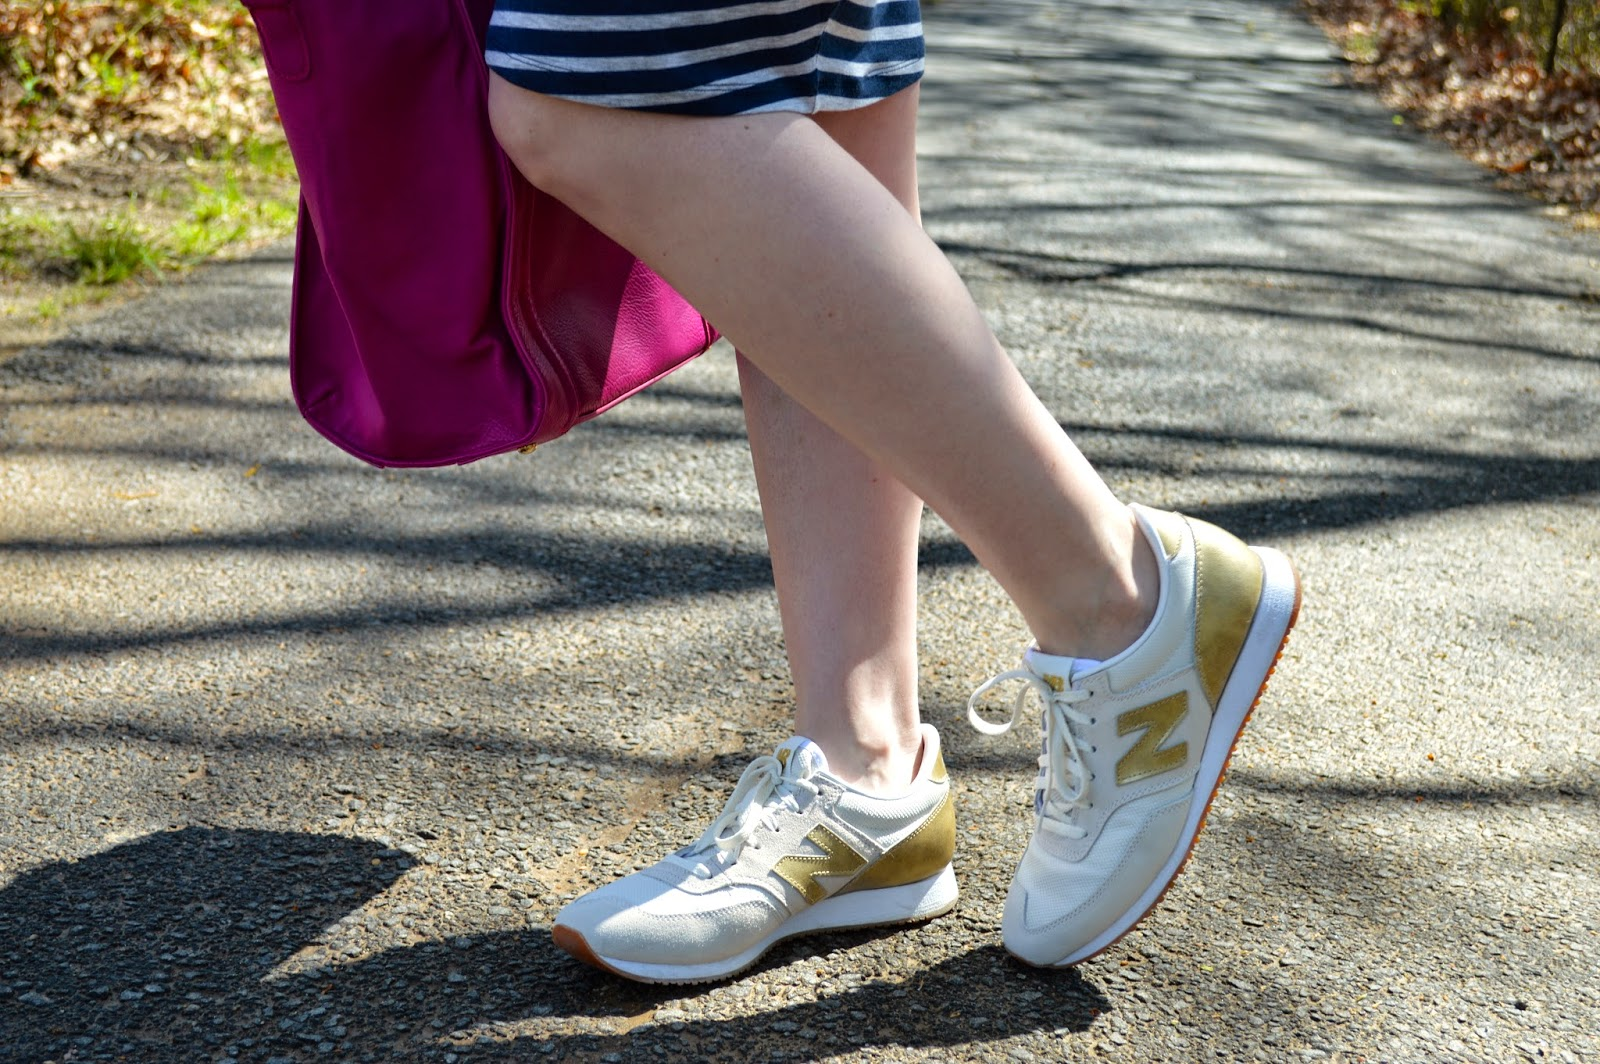 New-Balance-for-J.Crew-shoes